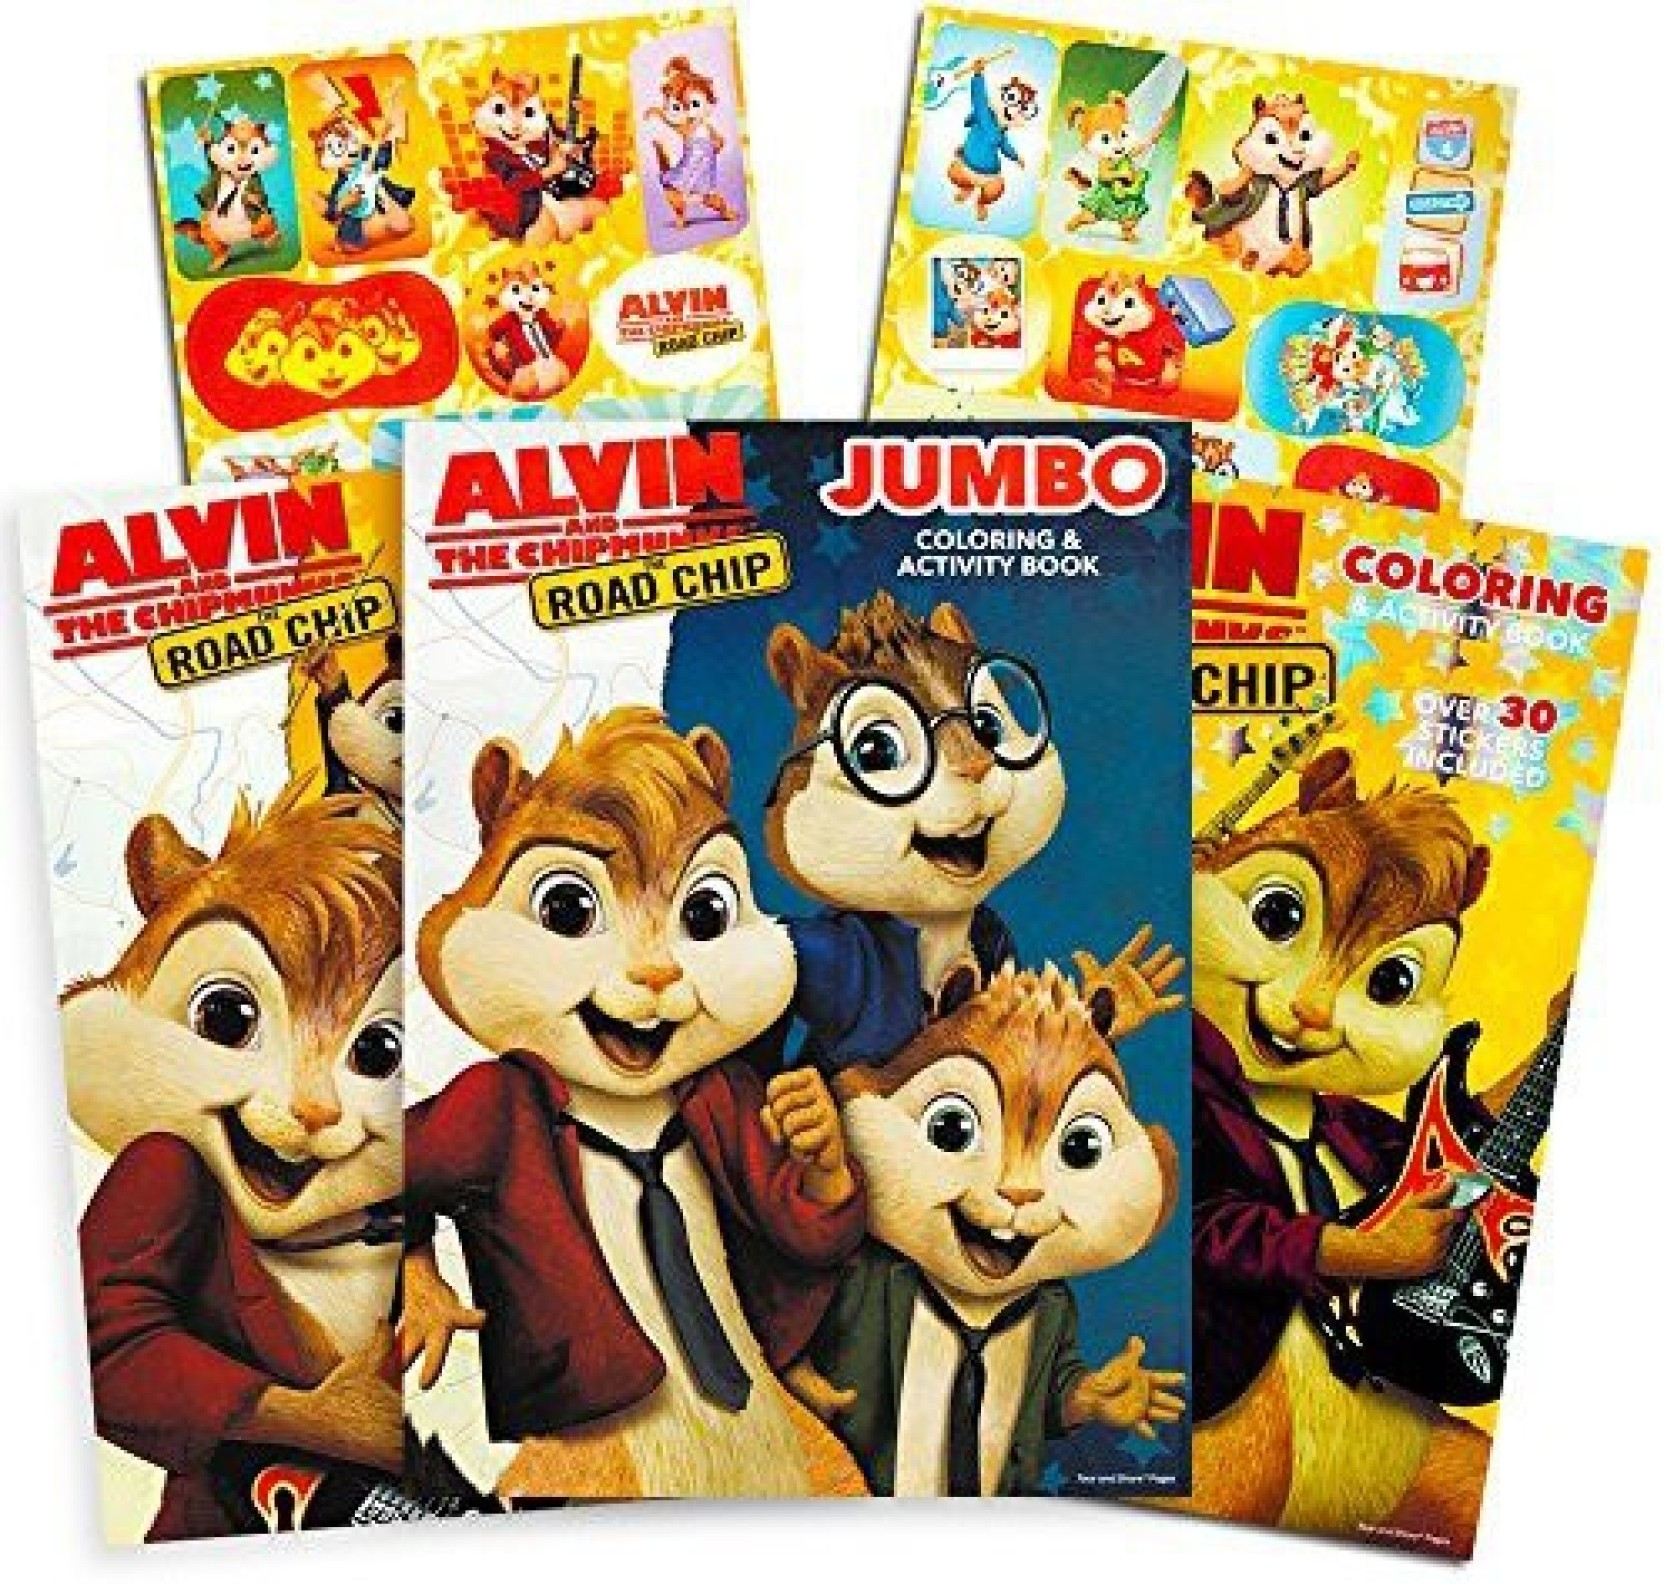 Alvin And The Chipmunks 3 Images genrc alvin and the chipmunks coloring and activity book set